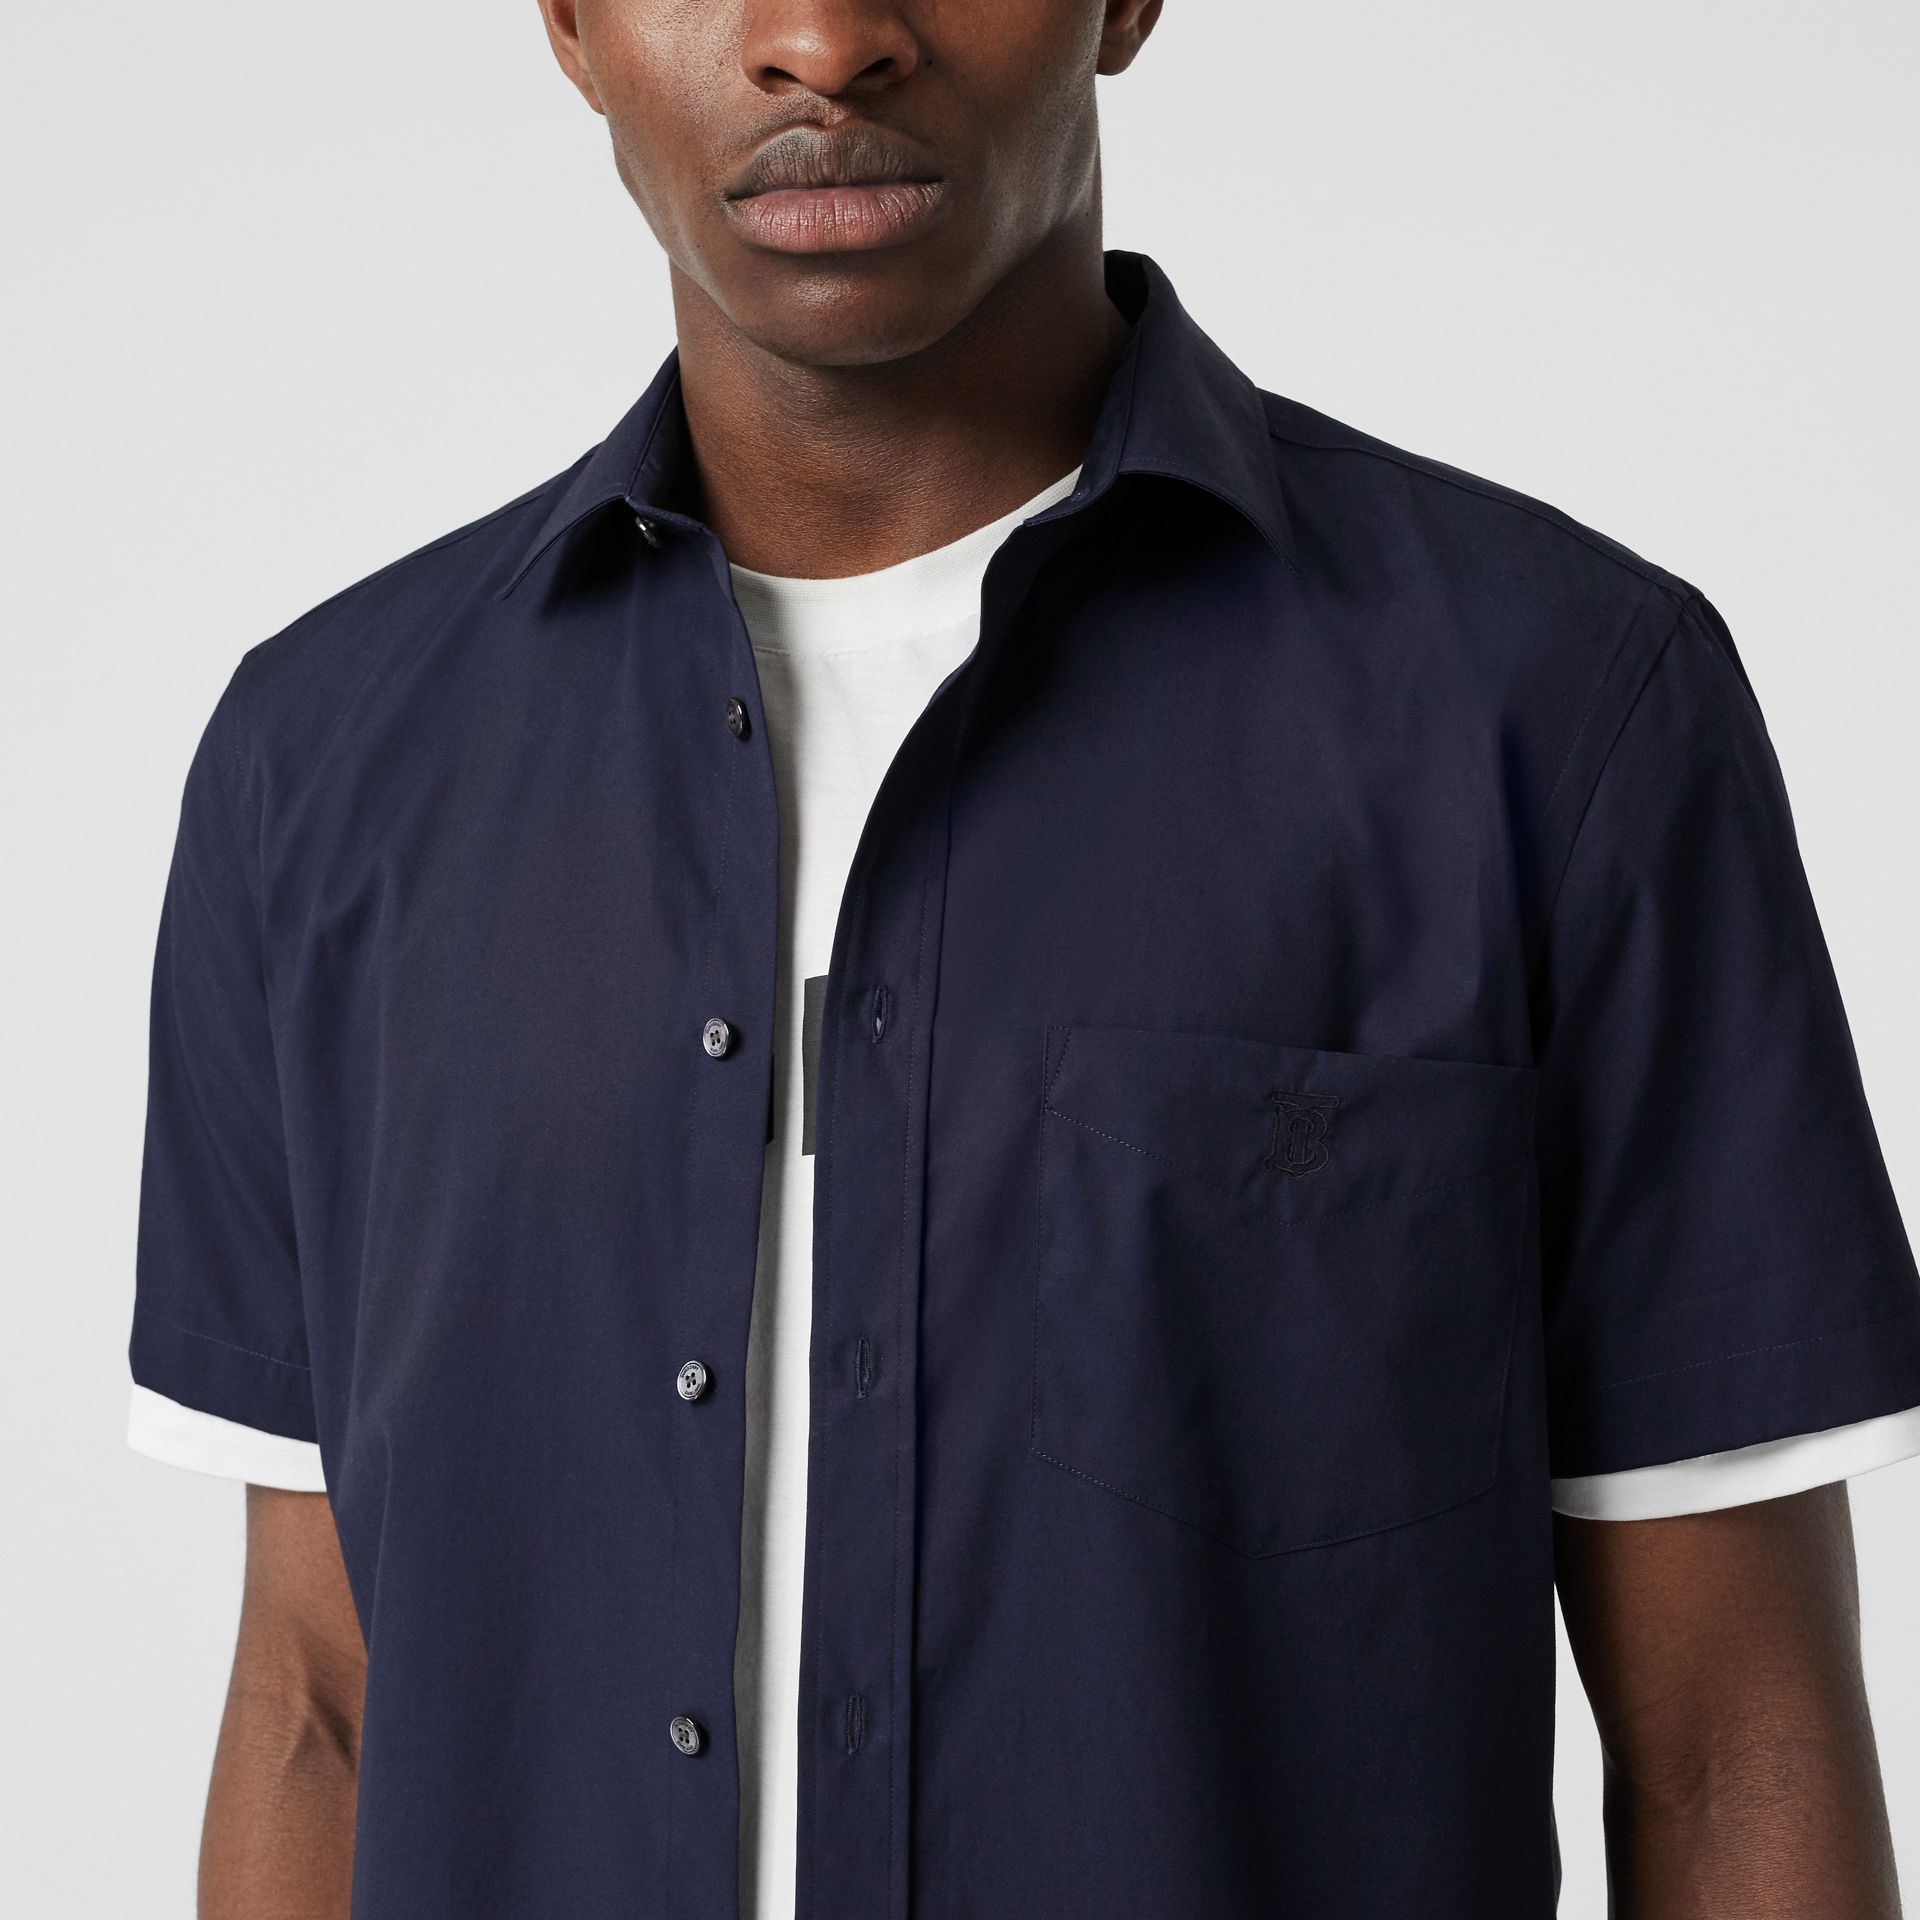 Short-sleeve Monogram Motif Stretch Cotton Shirt in Navy - Men | Burberry Australia - gallery image 1